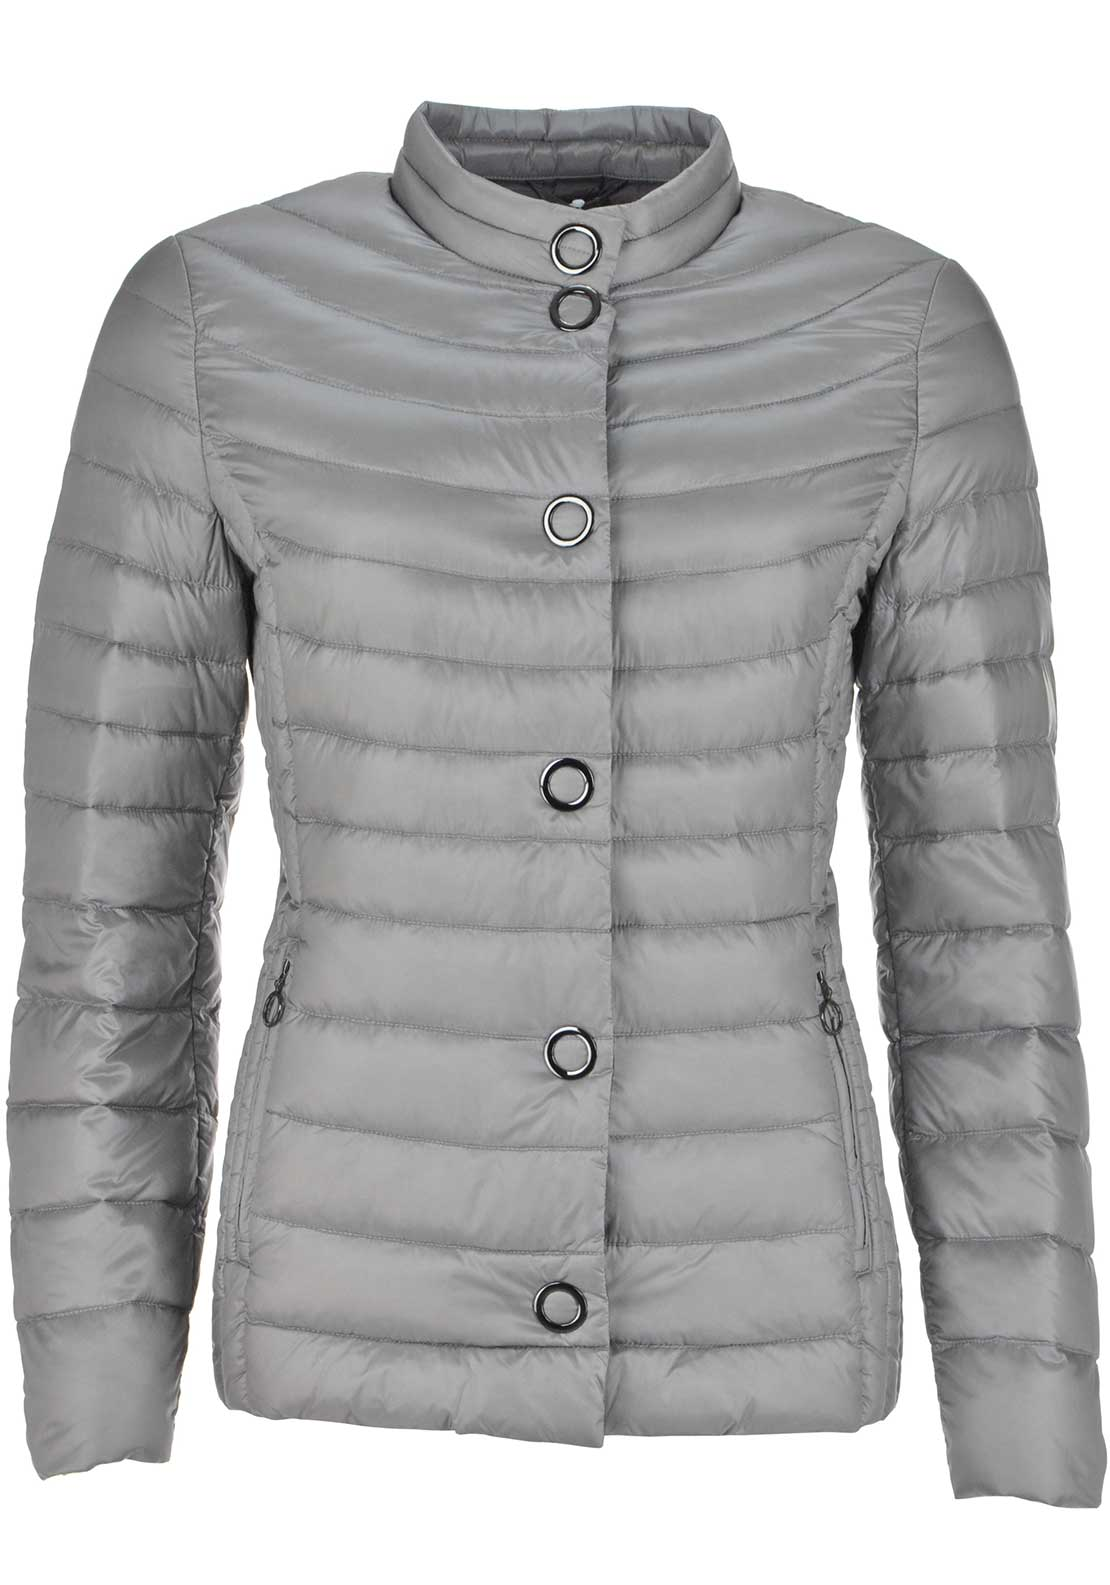 Gerry Weber Quilted Anorak Jacket, Grey